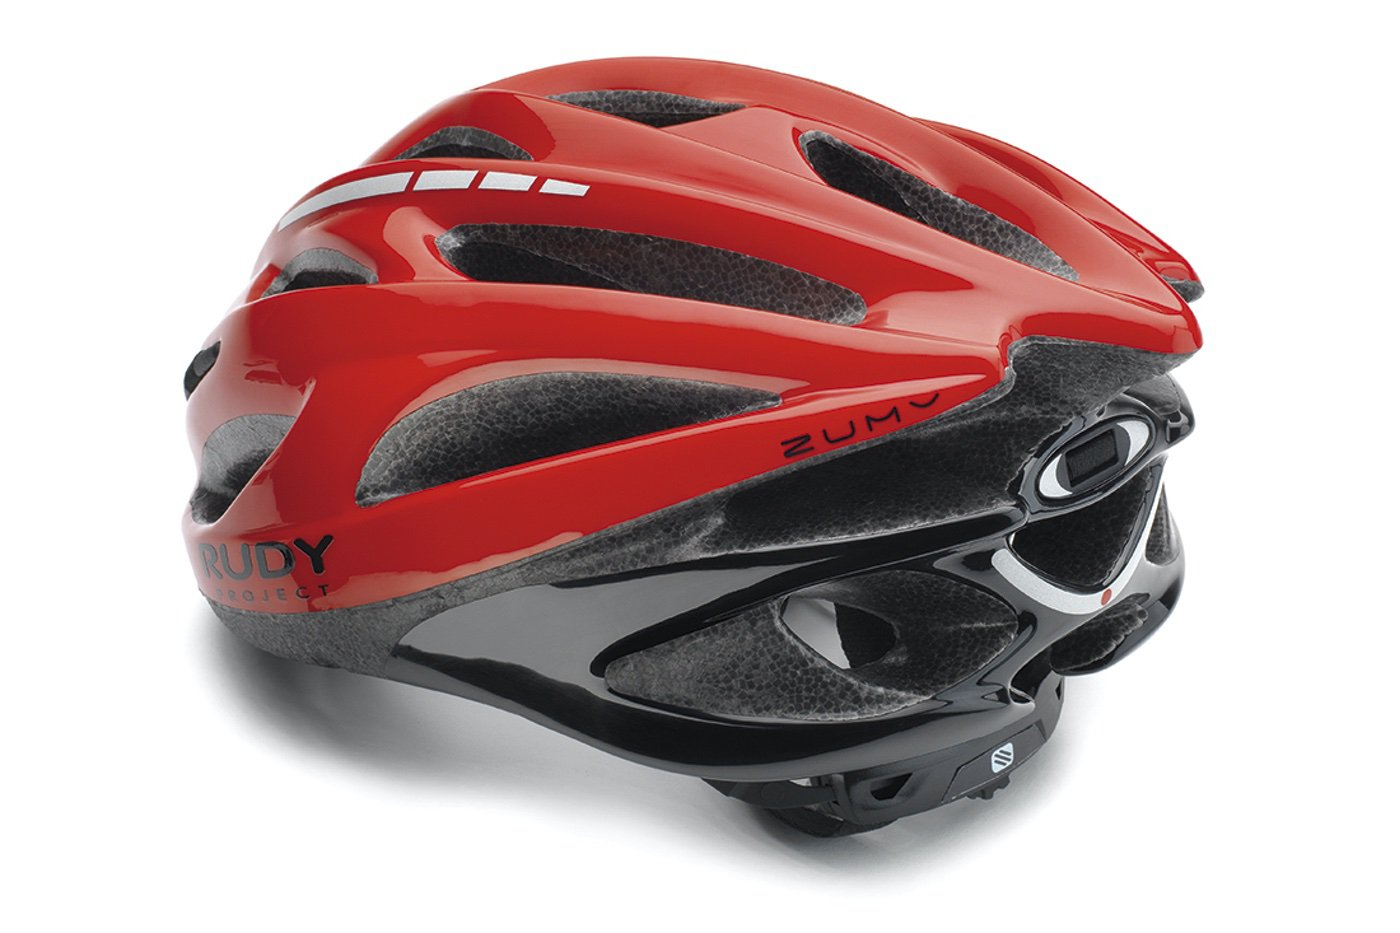 Casco Rudy Project Zumy